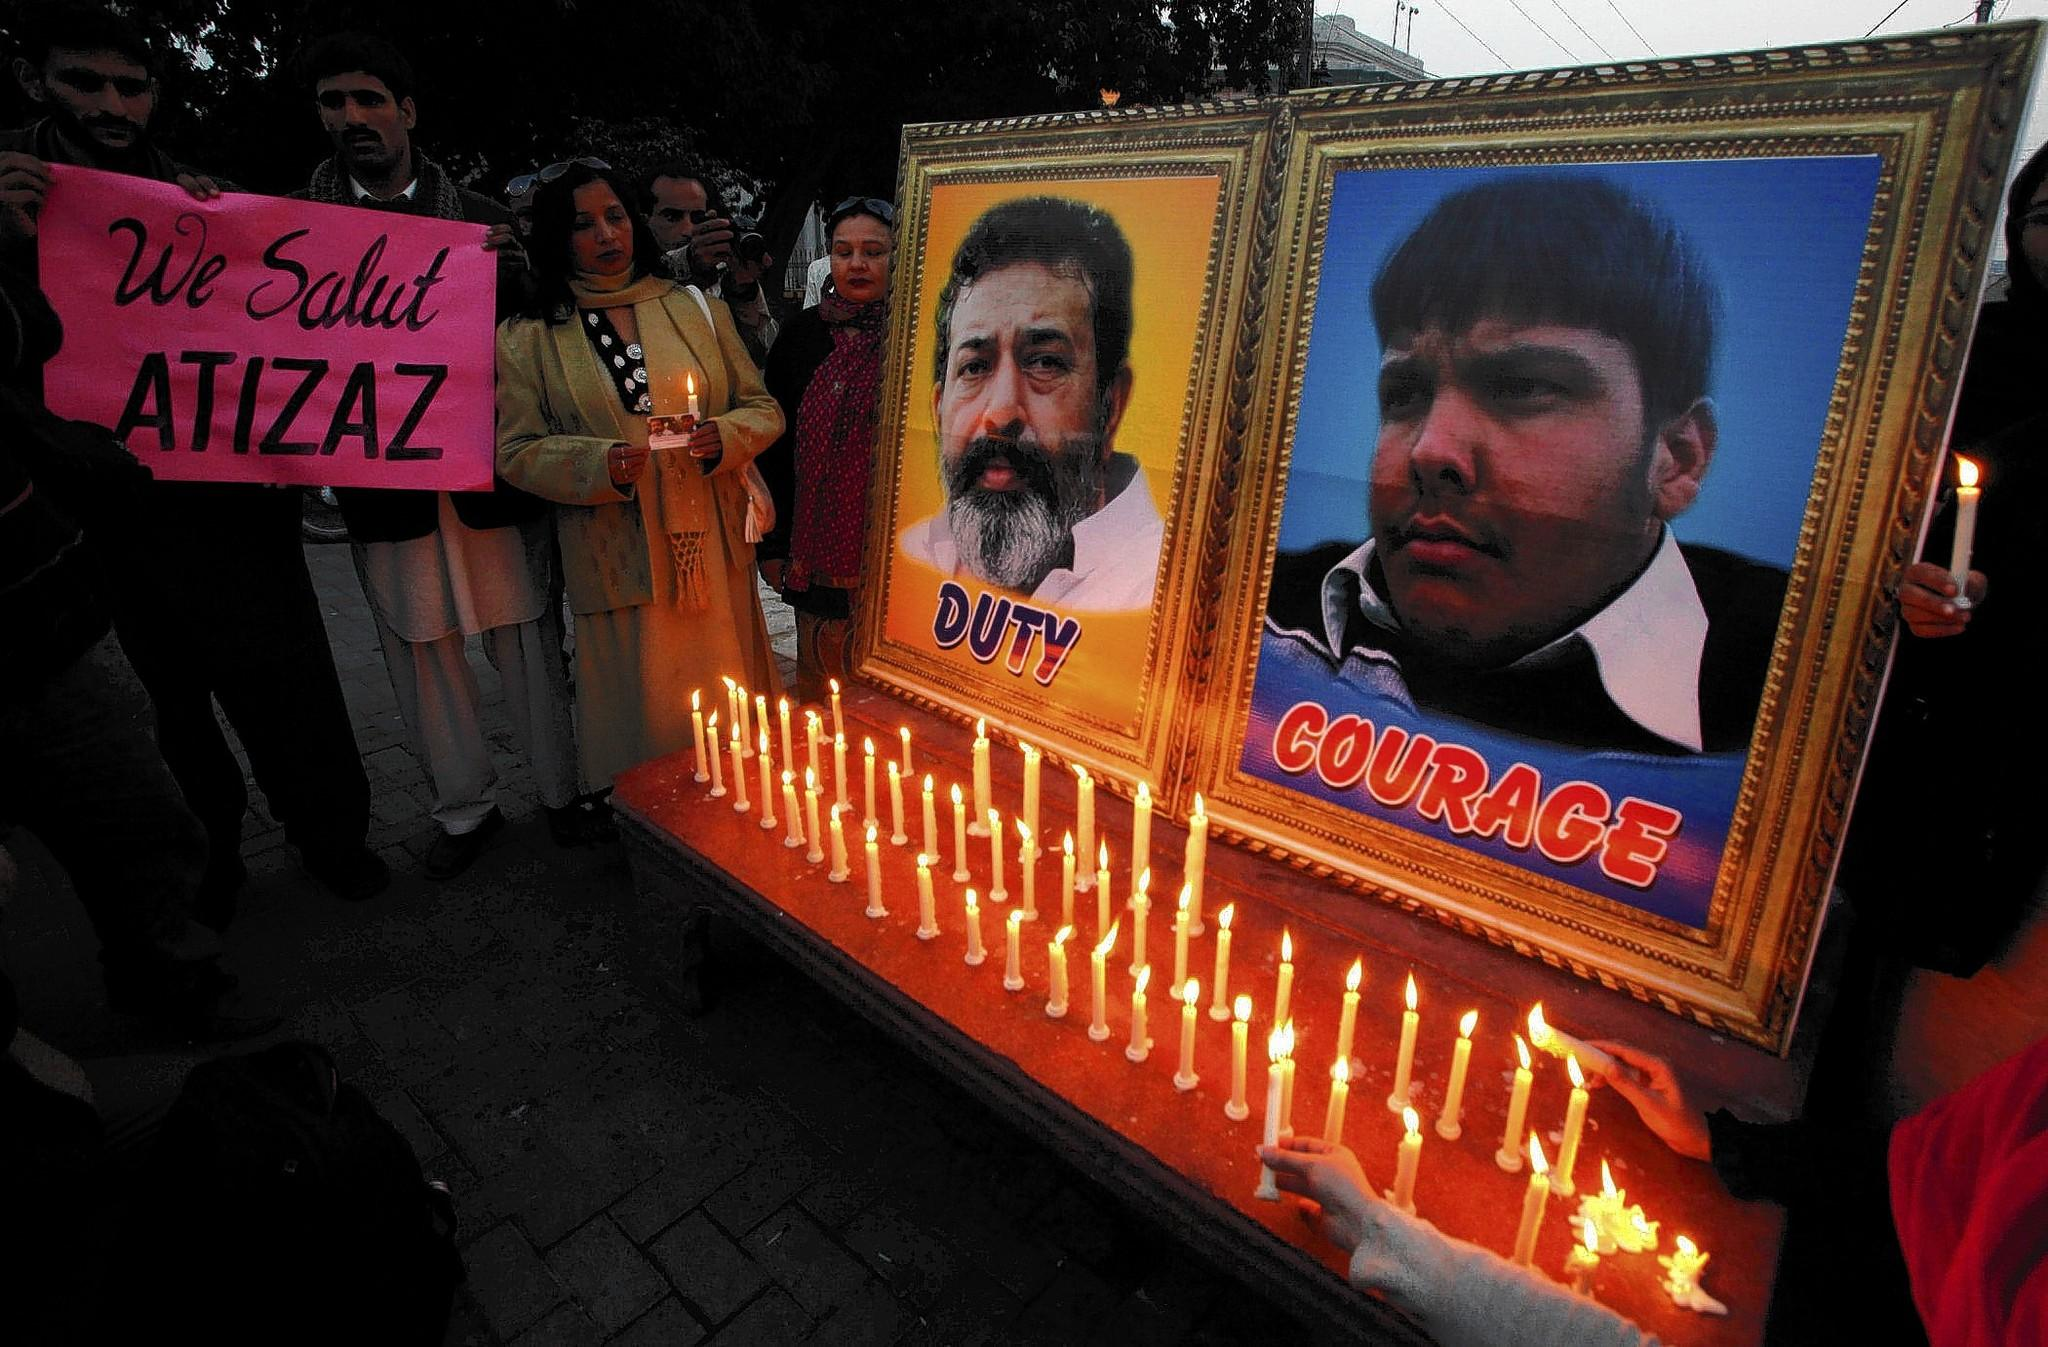 A vigil in Pakistan honors Aitzaz Hasan (photo on right), who was killed Jan. 6 after tackling a suicide bomber who was about to enter his school. The other photo shows Pakistani policeman Superintendent Chaudhry Aslam, who was killed in a separate bomb attack in January.